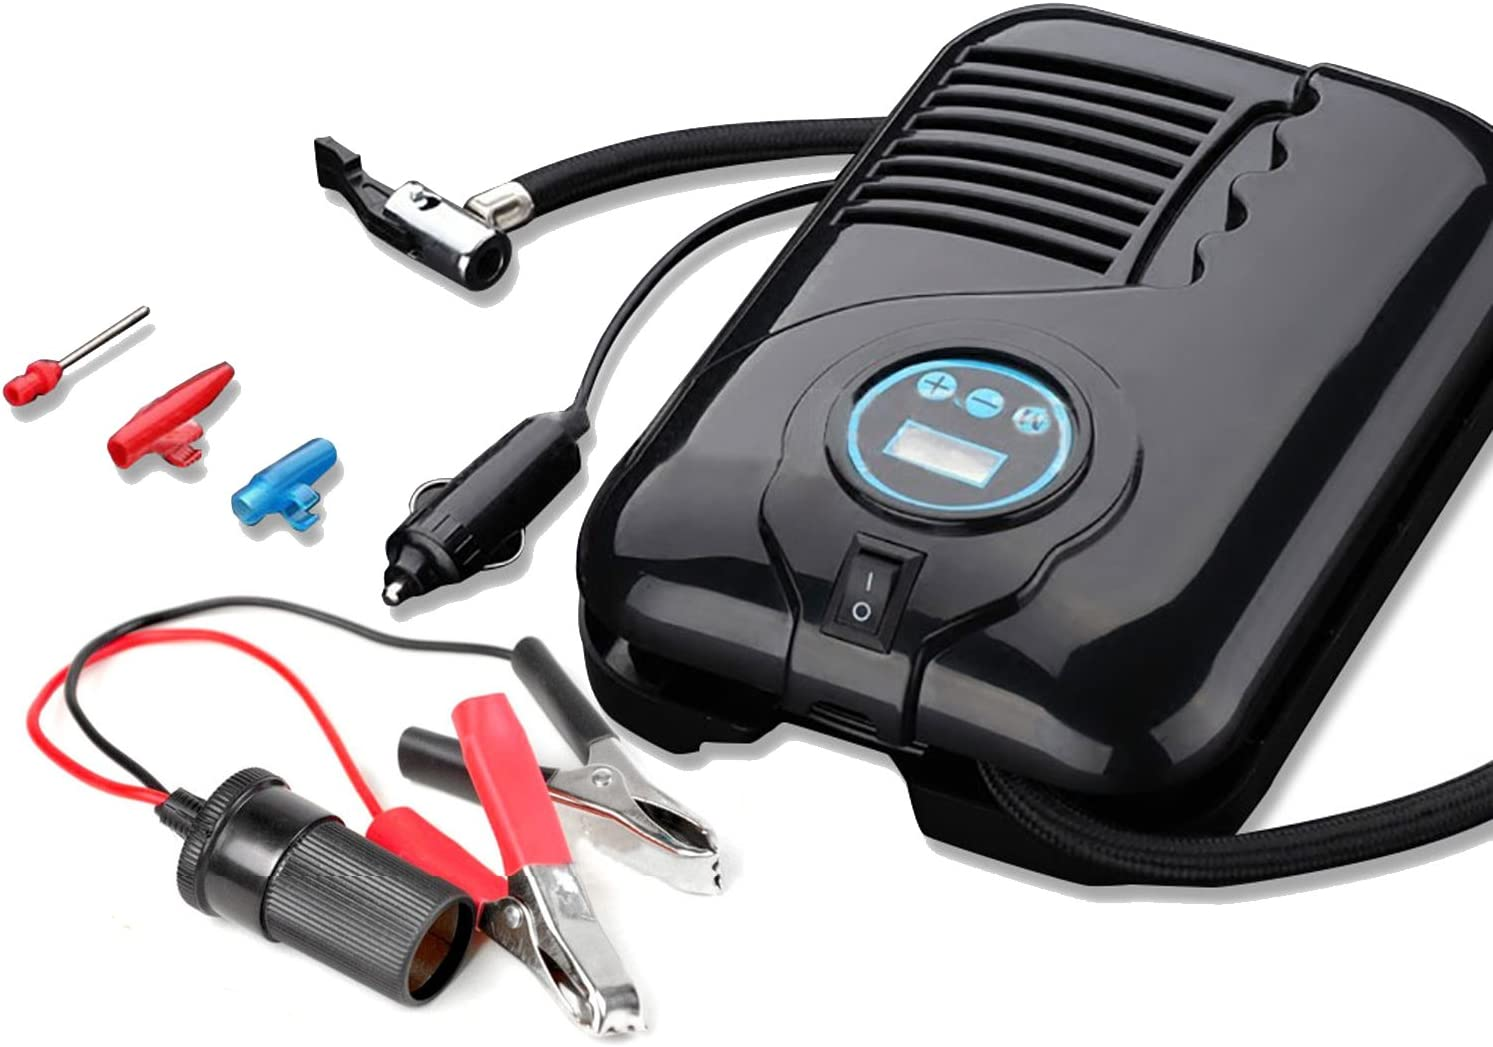 NUZAMAS Tire Inflator Portable Air with Popular brand in the world Compressor LED All items in the store P Digital